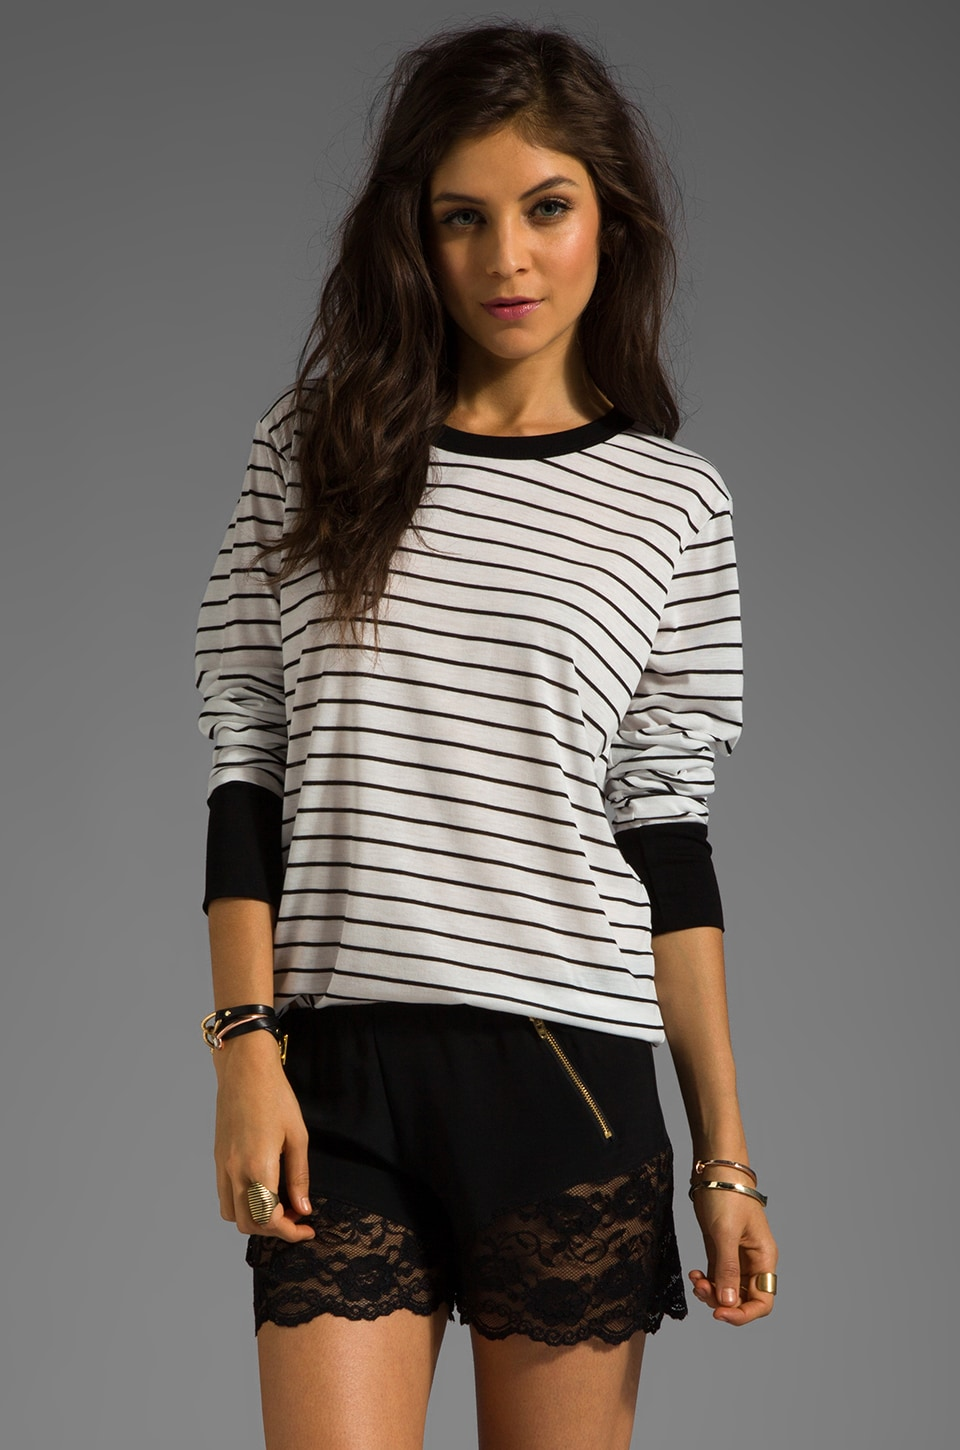 LNA Sandy Long Sleeve Tee in White/Black Stripe